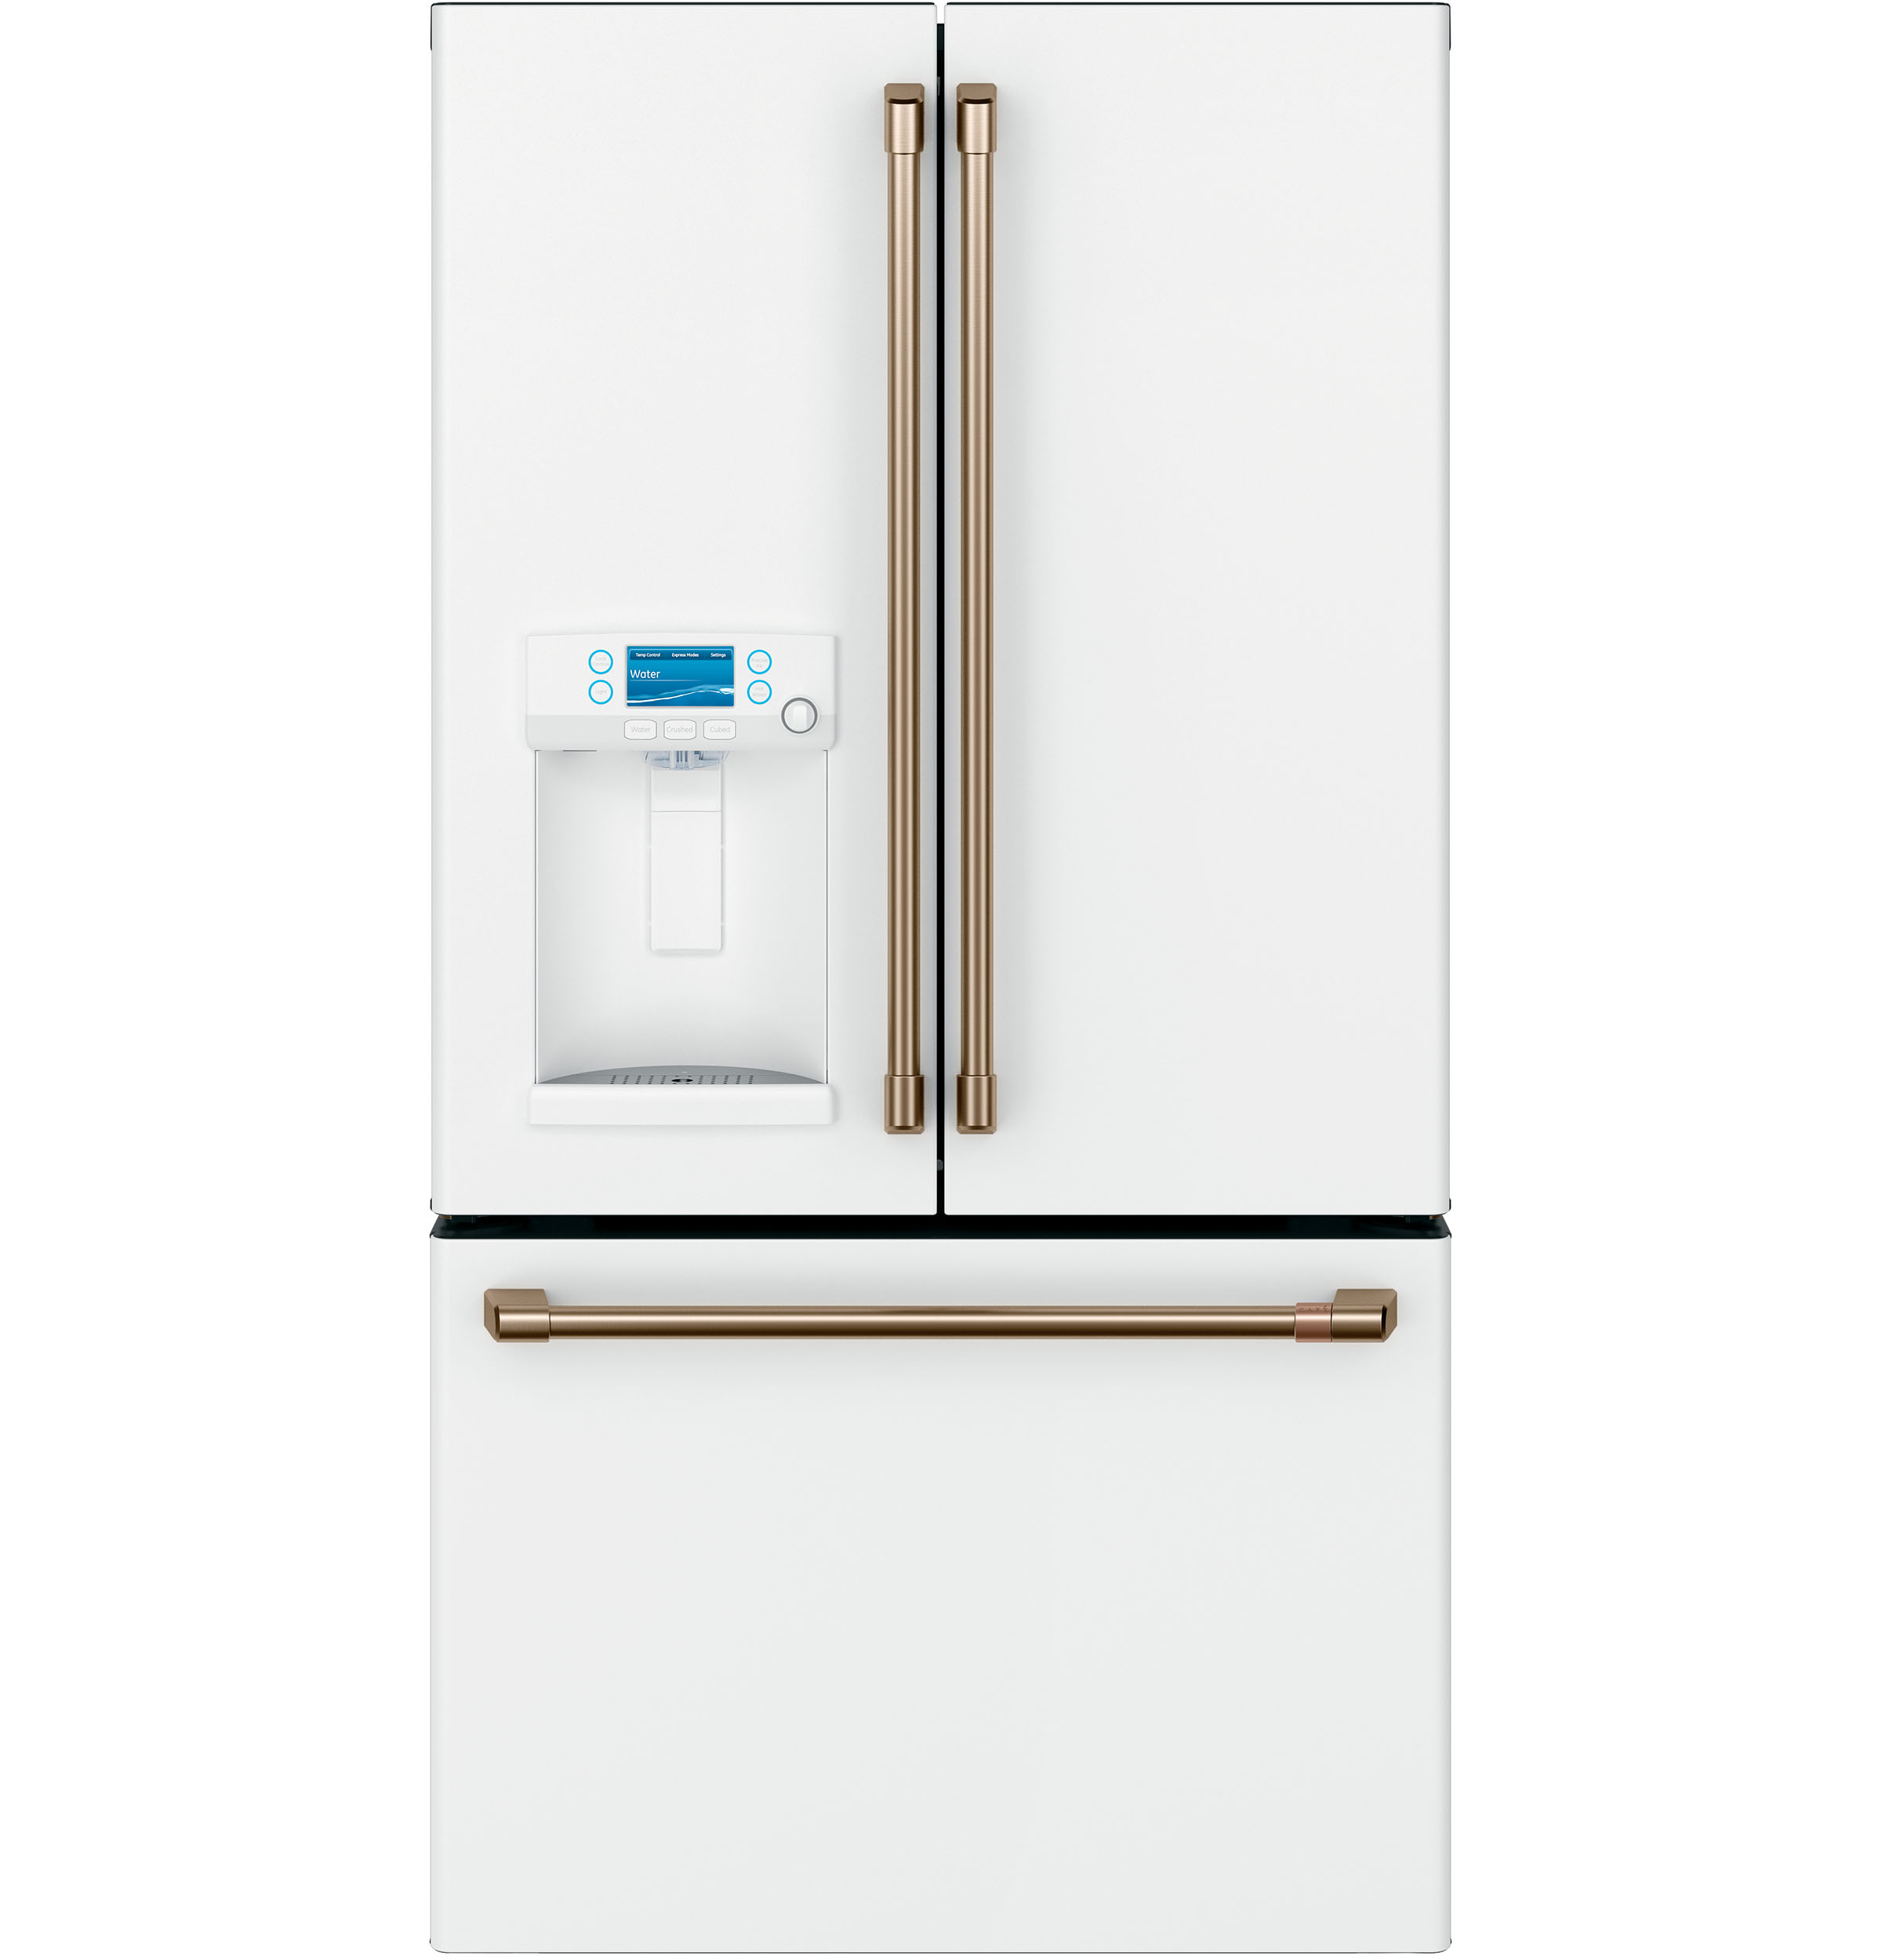 Cafe Café™ ENERGY STAR® 22.2 Cu. Ft. Smart Counter-Depth French-Door Refrigerator with Hot Water Dispenser